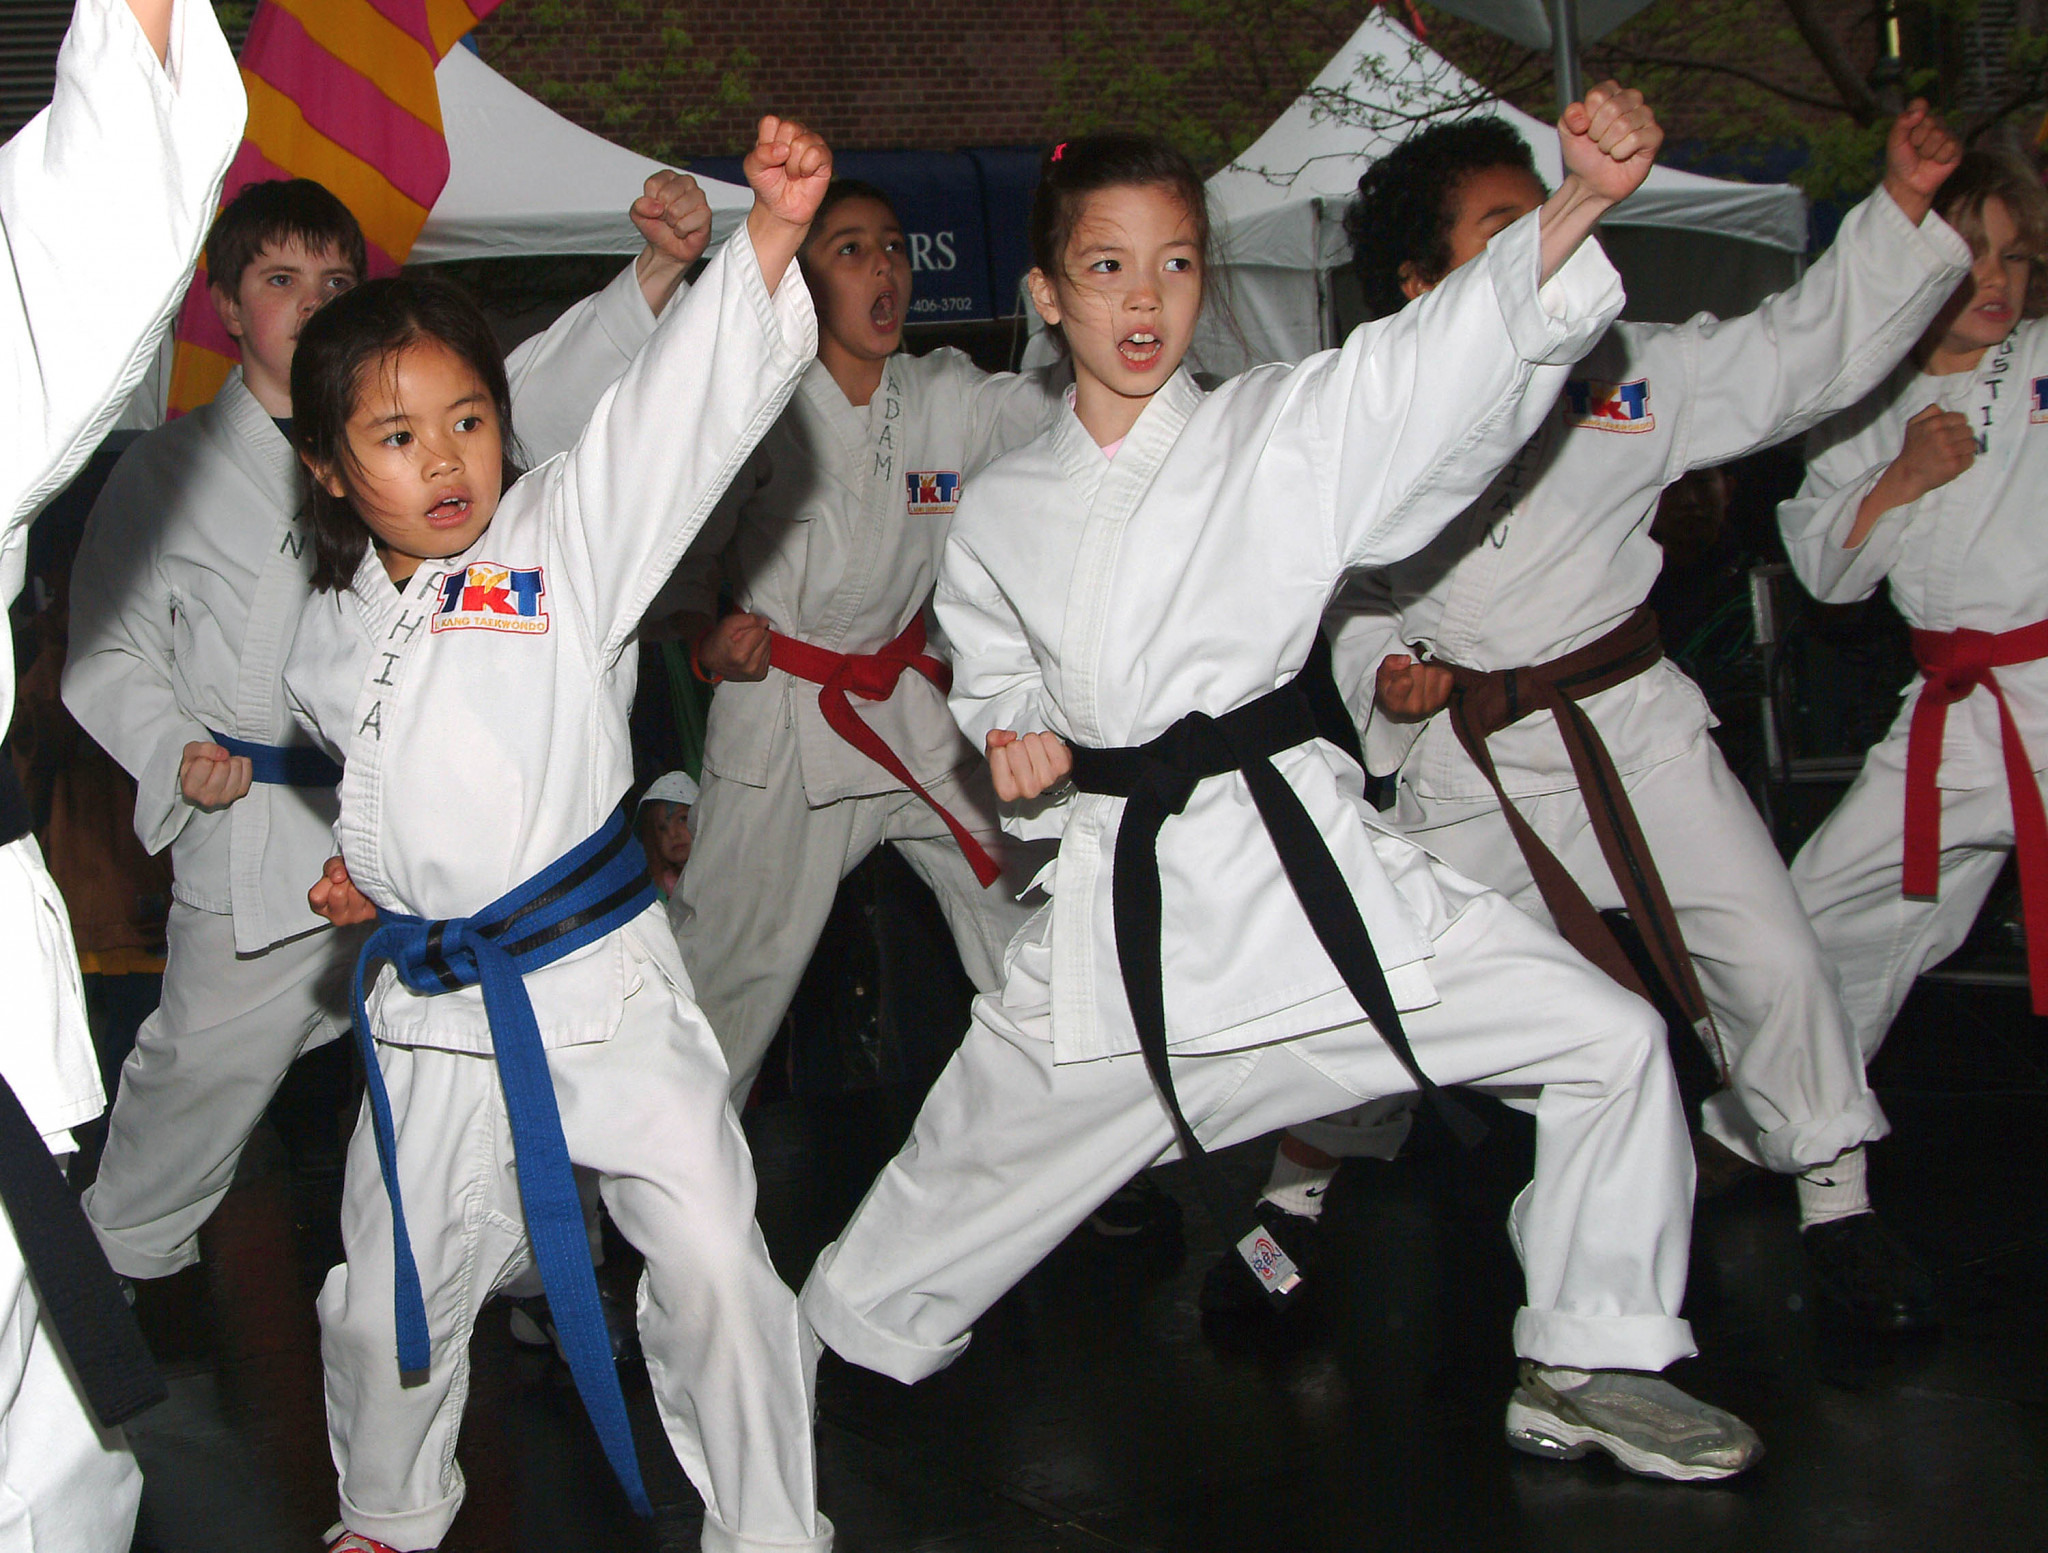 Children perform karate at the Family Festival Street Fair at the Tribeca Film Festival April 30, 2005 in New York City ©Getty Images